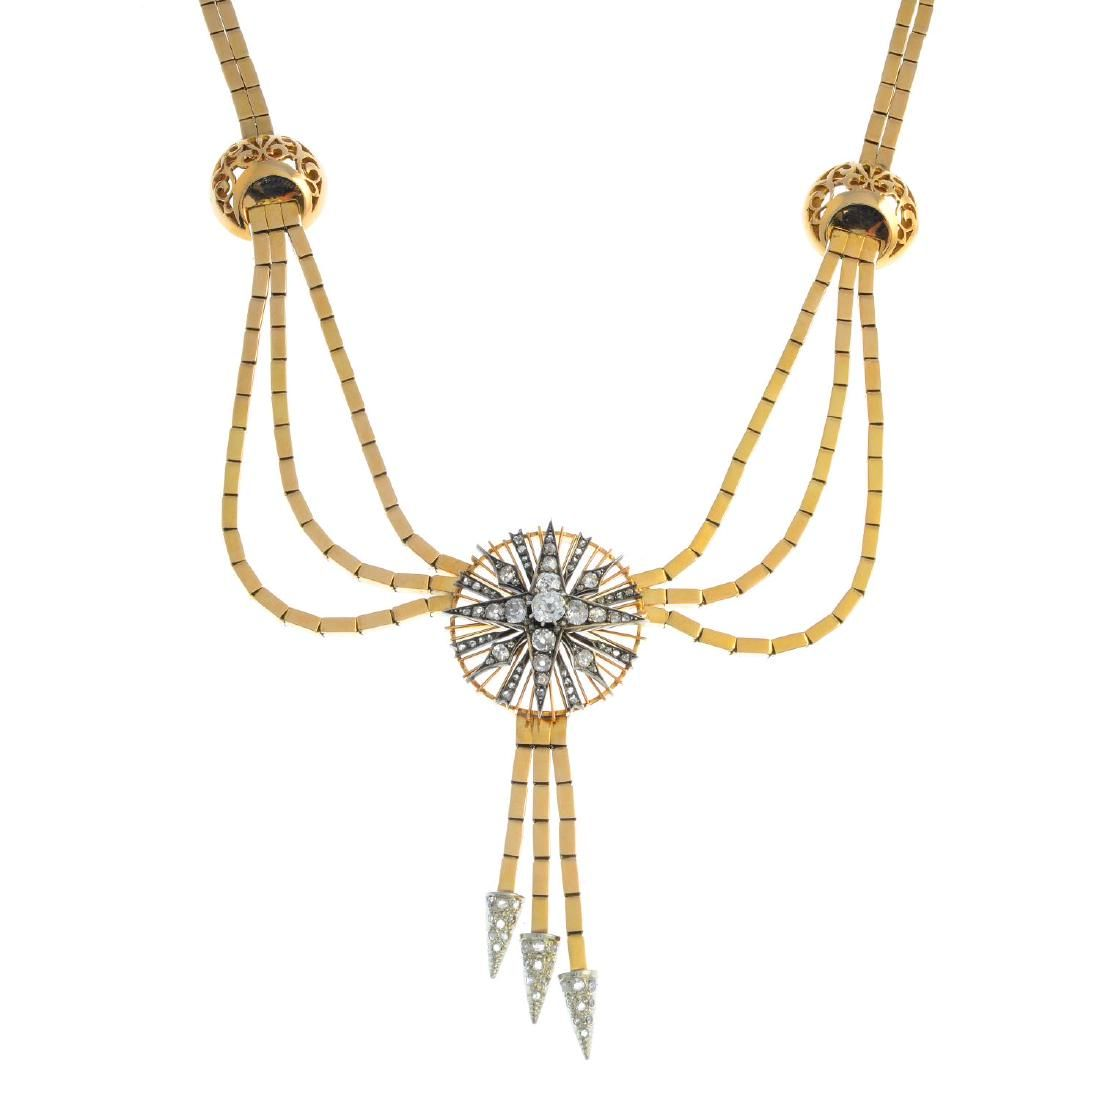 A mid 20th century 18ct gold diamond necklace. The